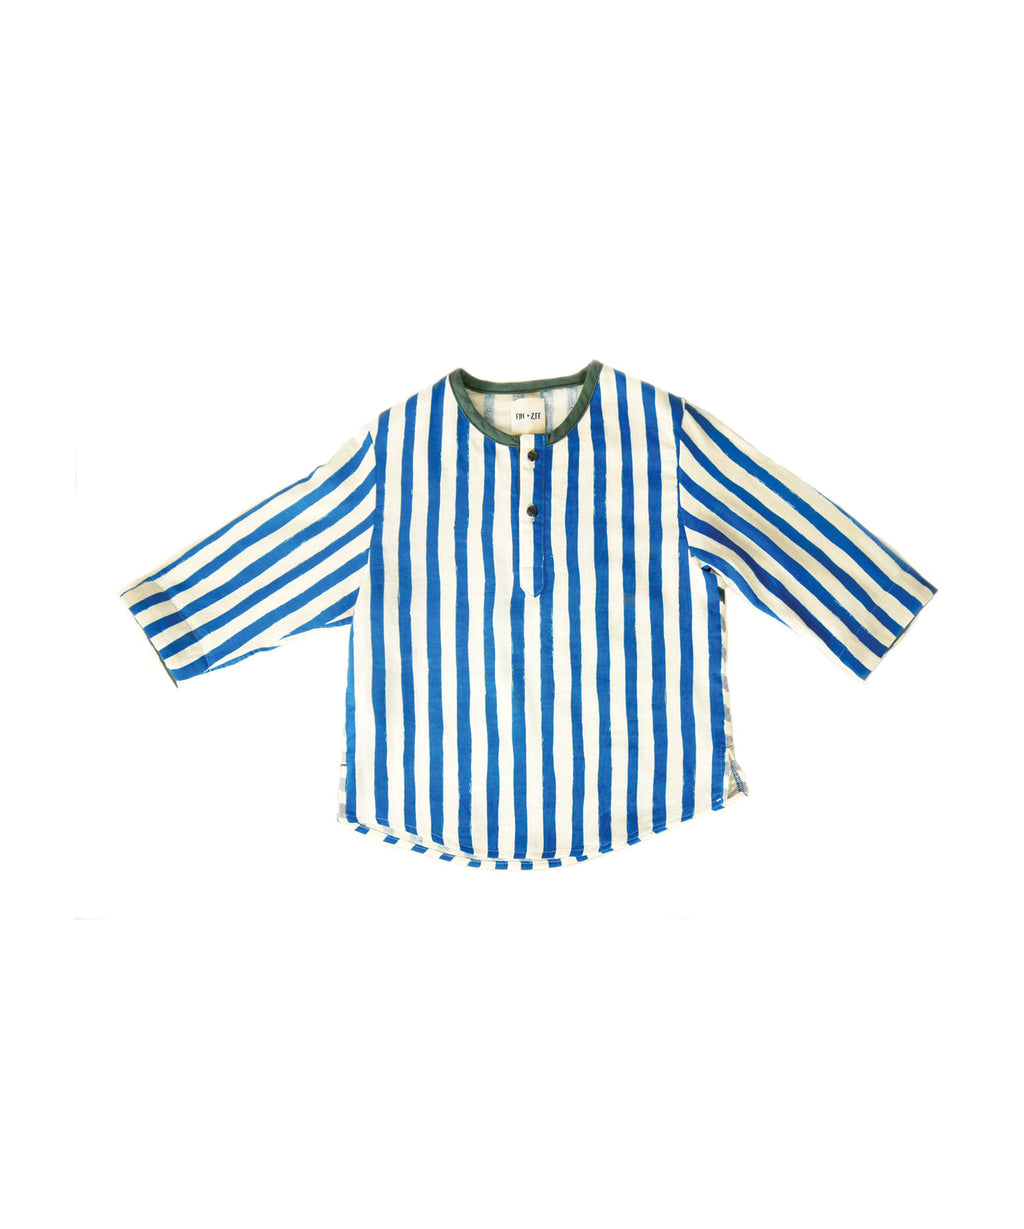 The Fin Shirt - Blue Stripes (Limited Edition)